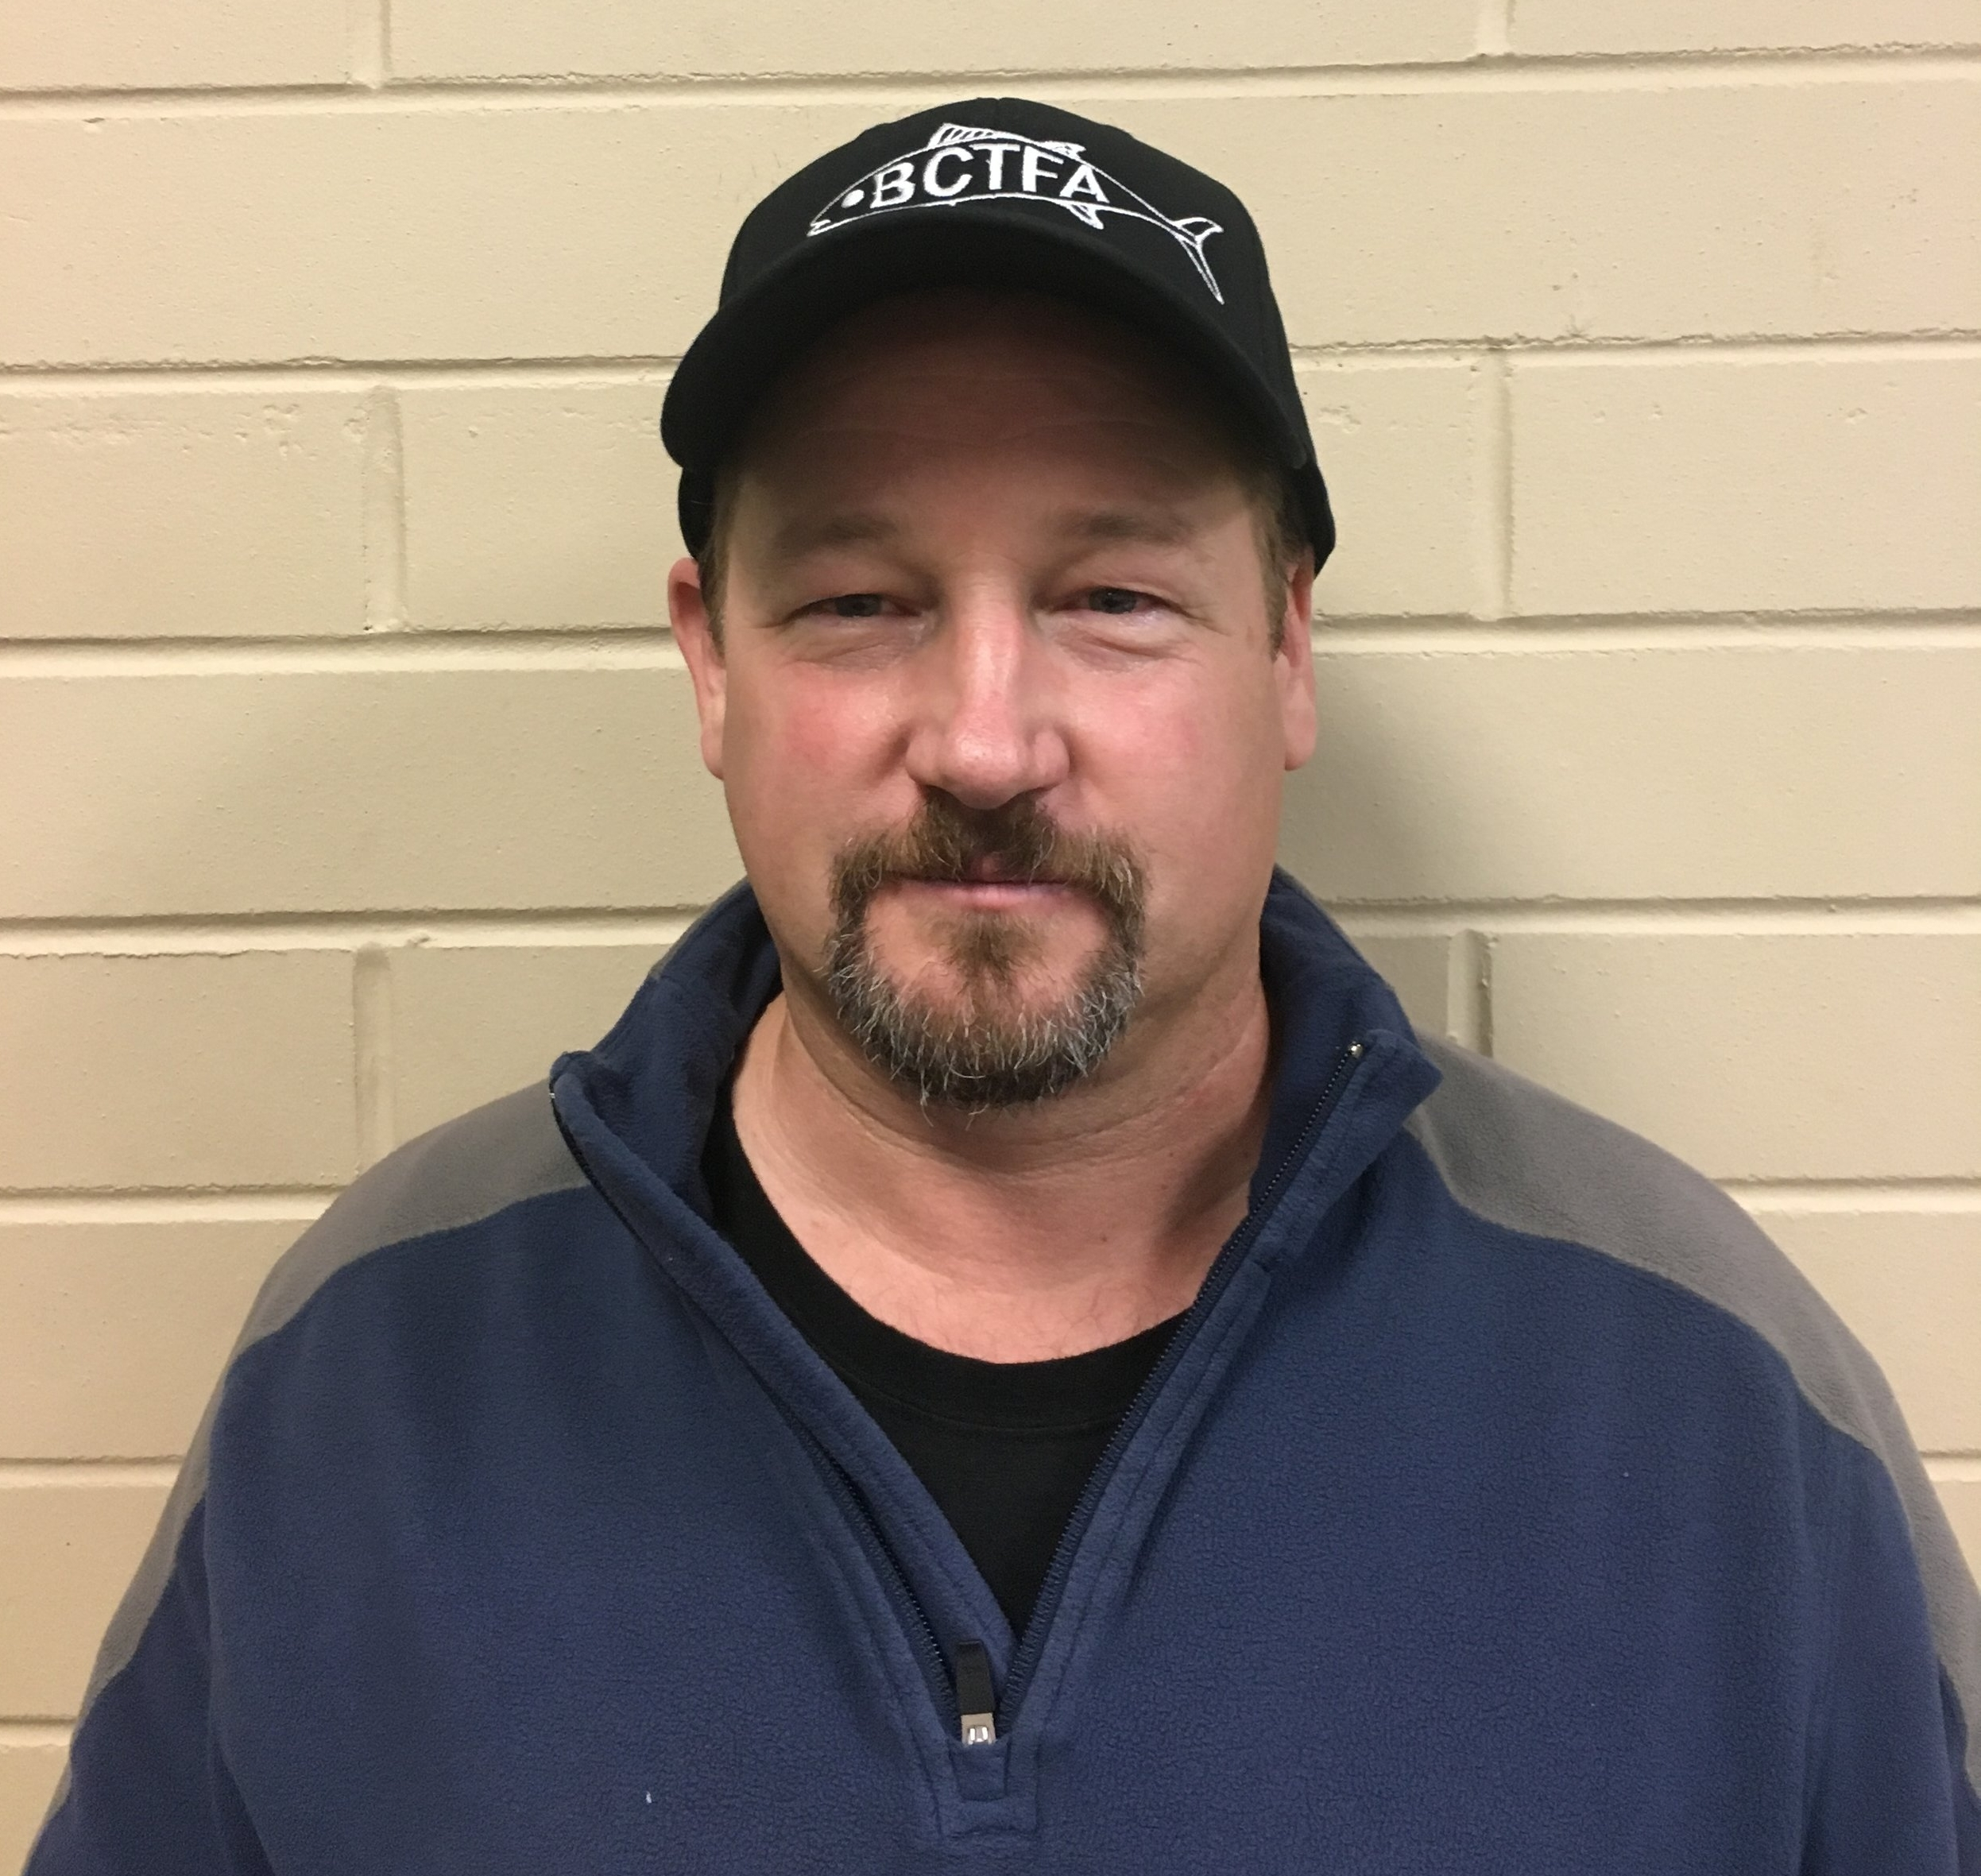 Gregg Holm-President - 34 years fishing experience salmon, shrimp, and tuna. Founding Director Canadian Highly Migratory Species Foundation (CHMSF) TAB Member and Treaty Advisor.